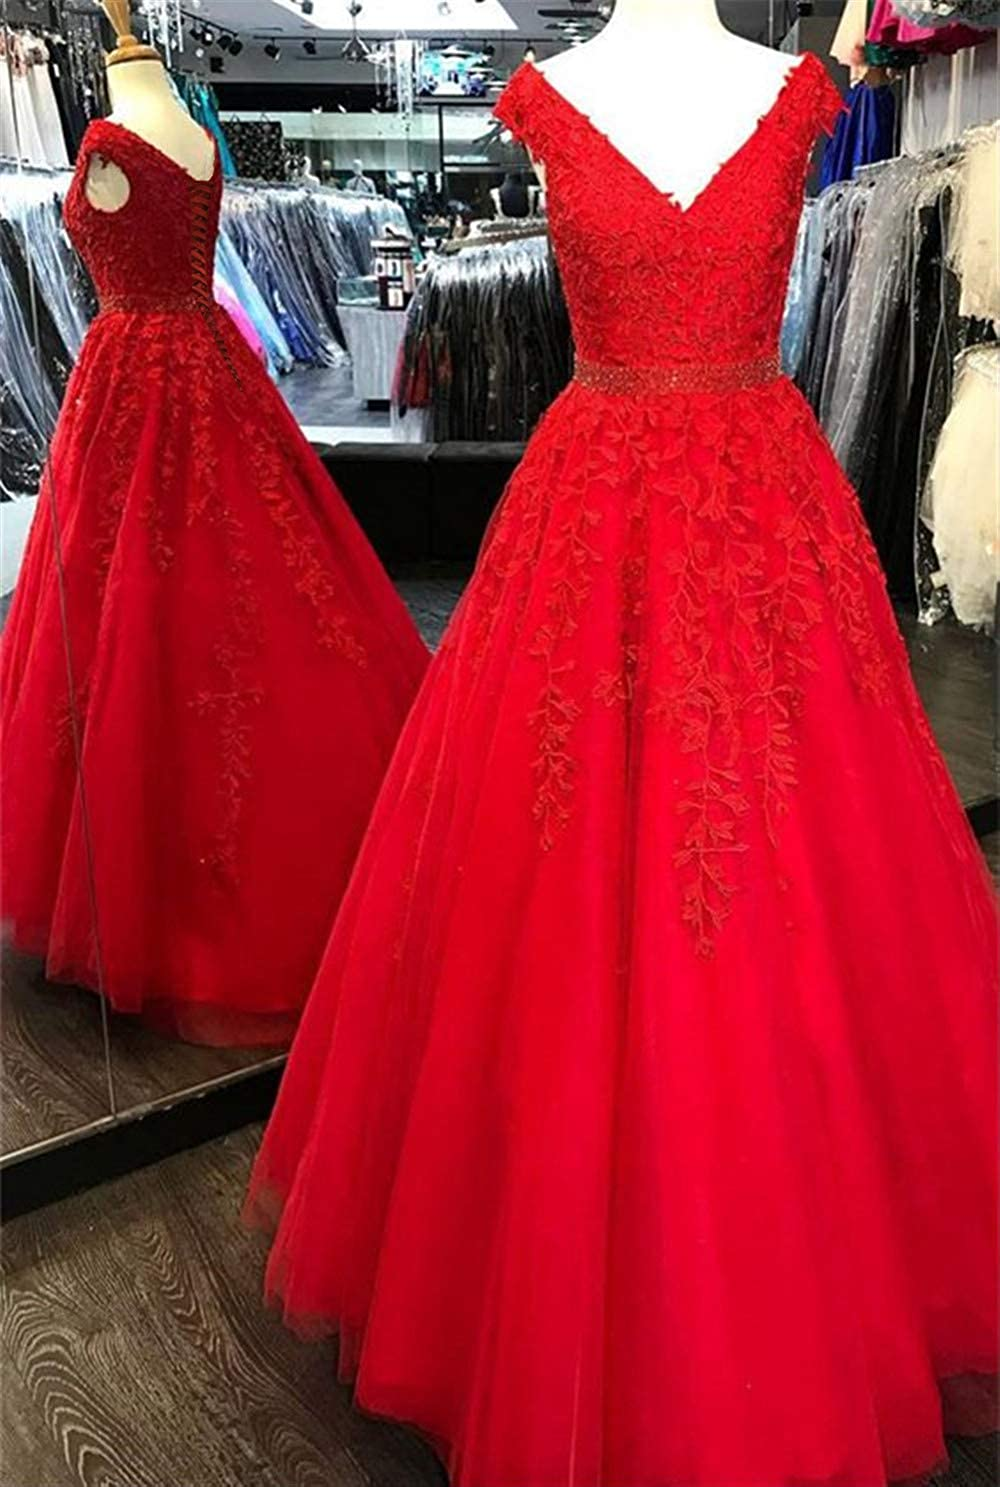 Lemai Women V Neck Beaded Lace Appliques Tulle Long Formal Evening Prom Dresses